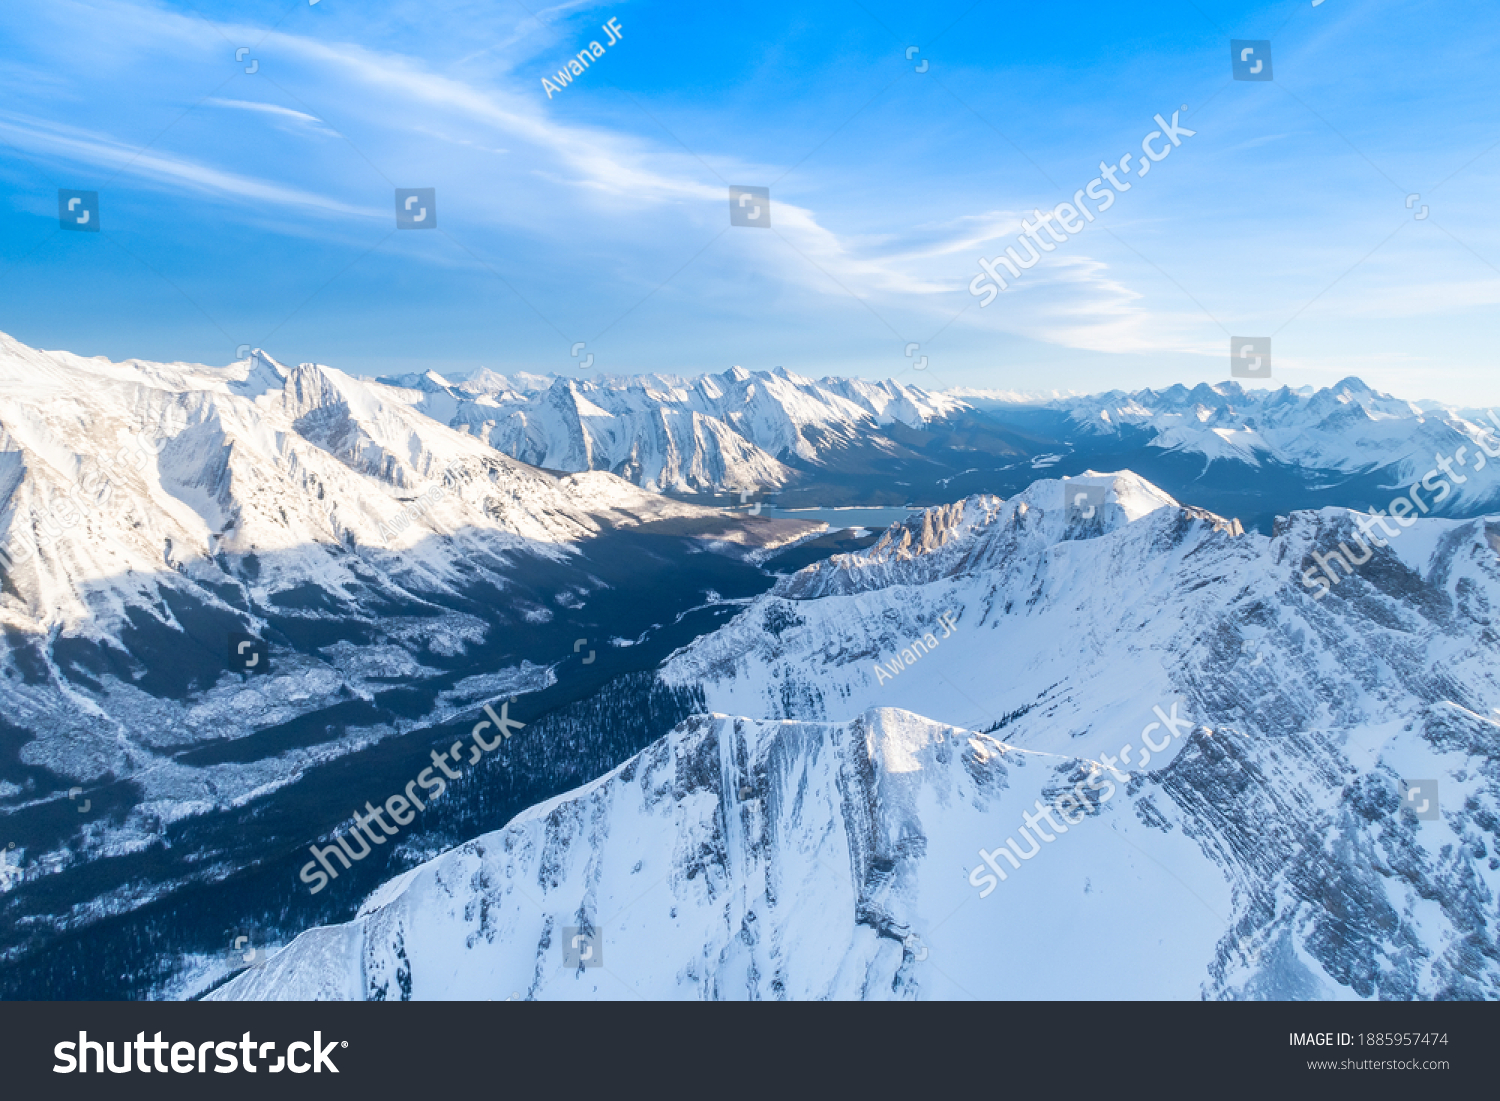 stock-photo-aerial-view-of-the-canadian-